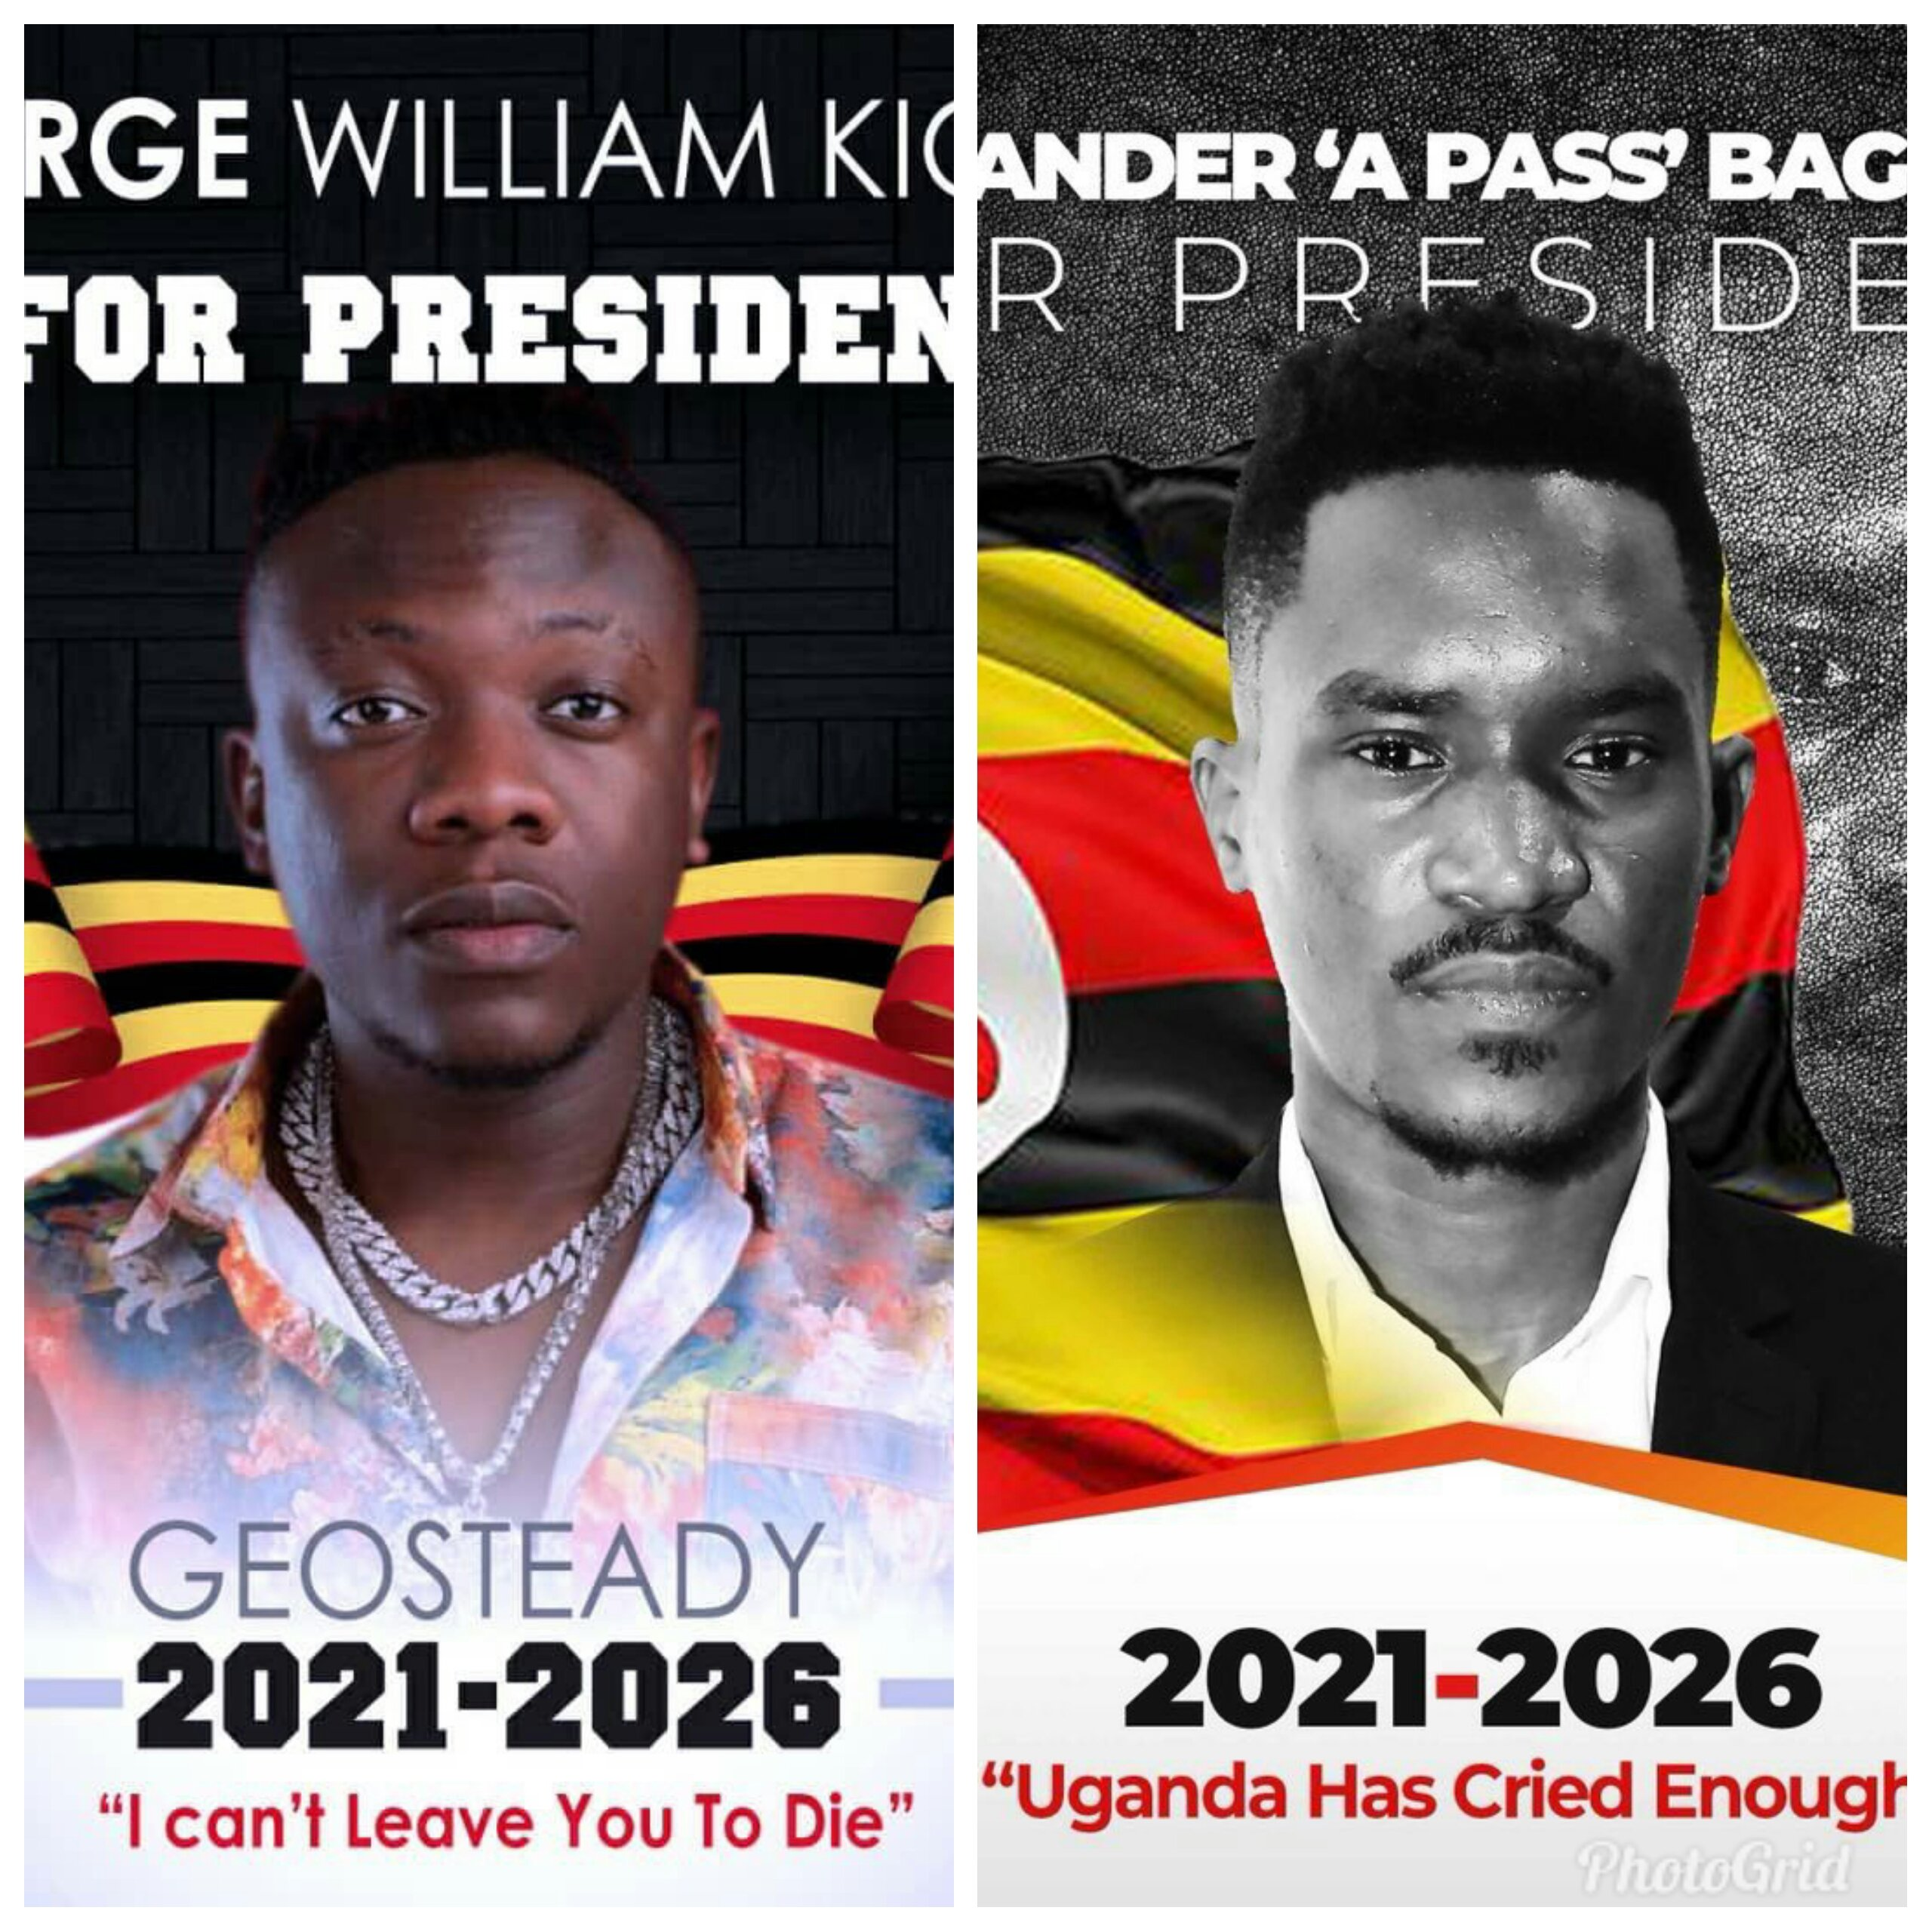 APASS Disses Geosteady's Dress-code on Presidential Poster